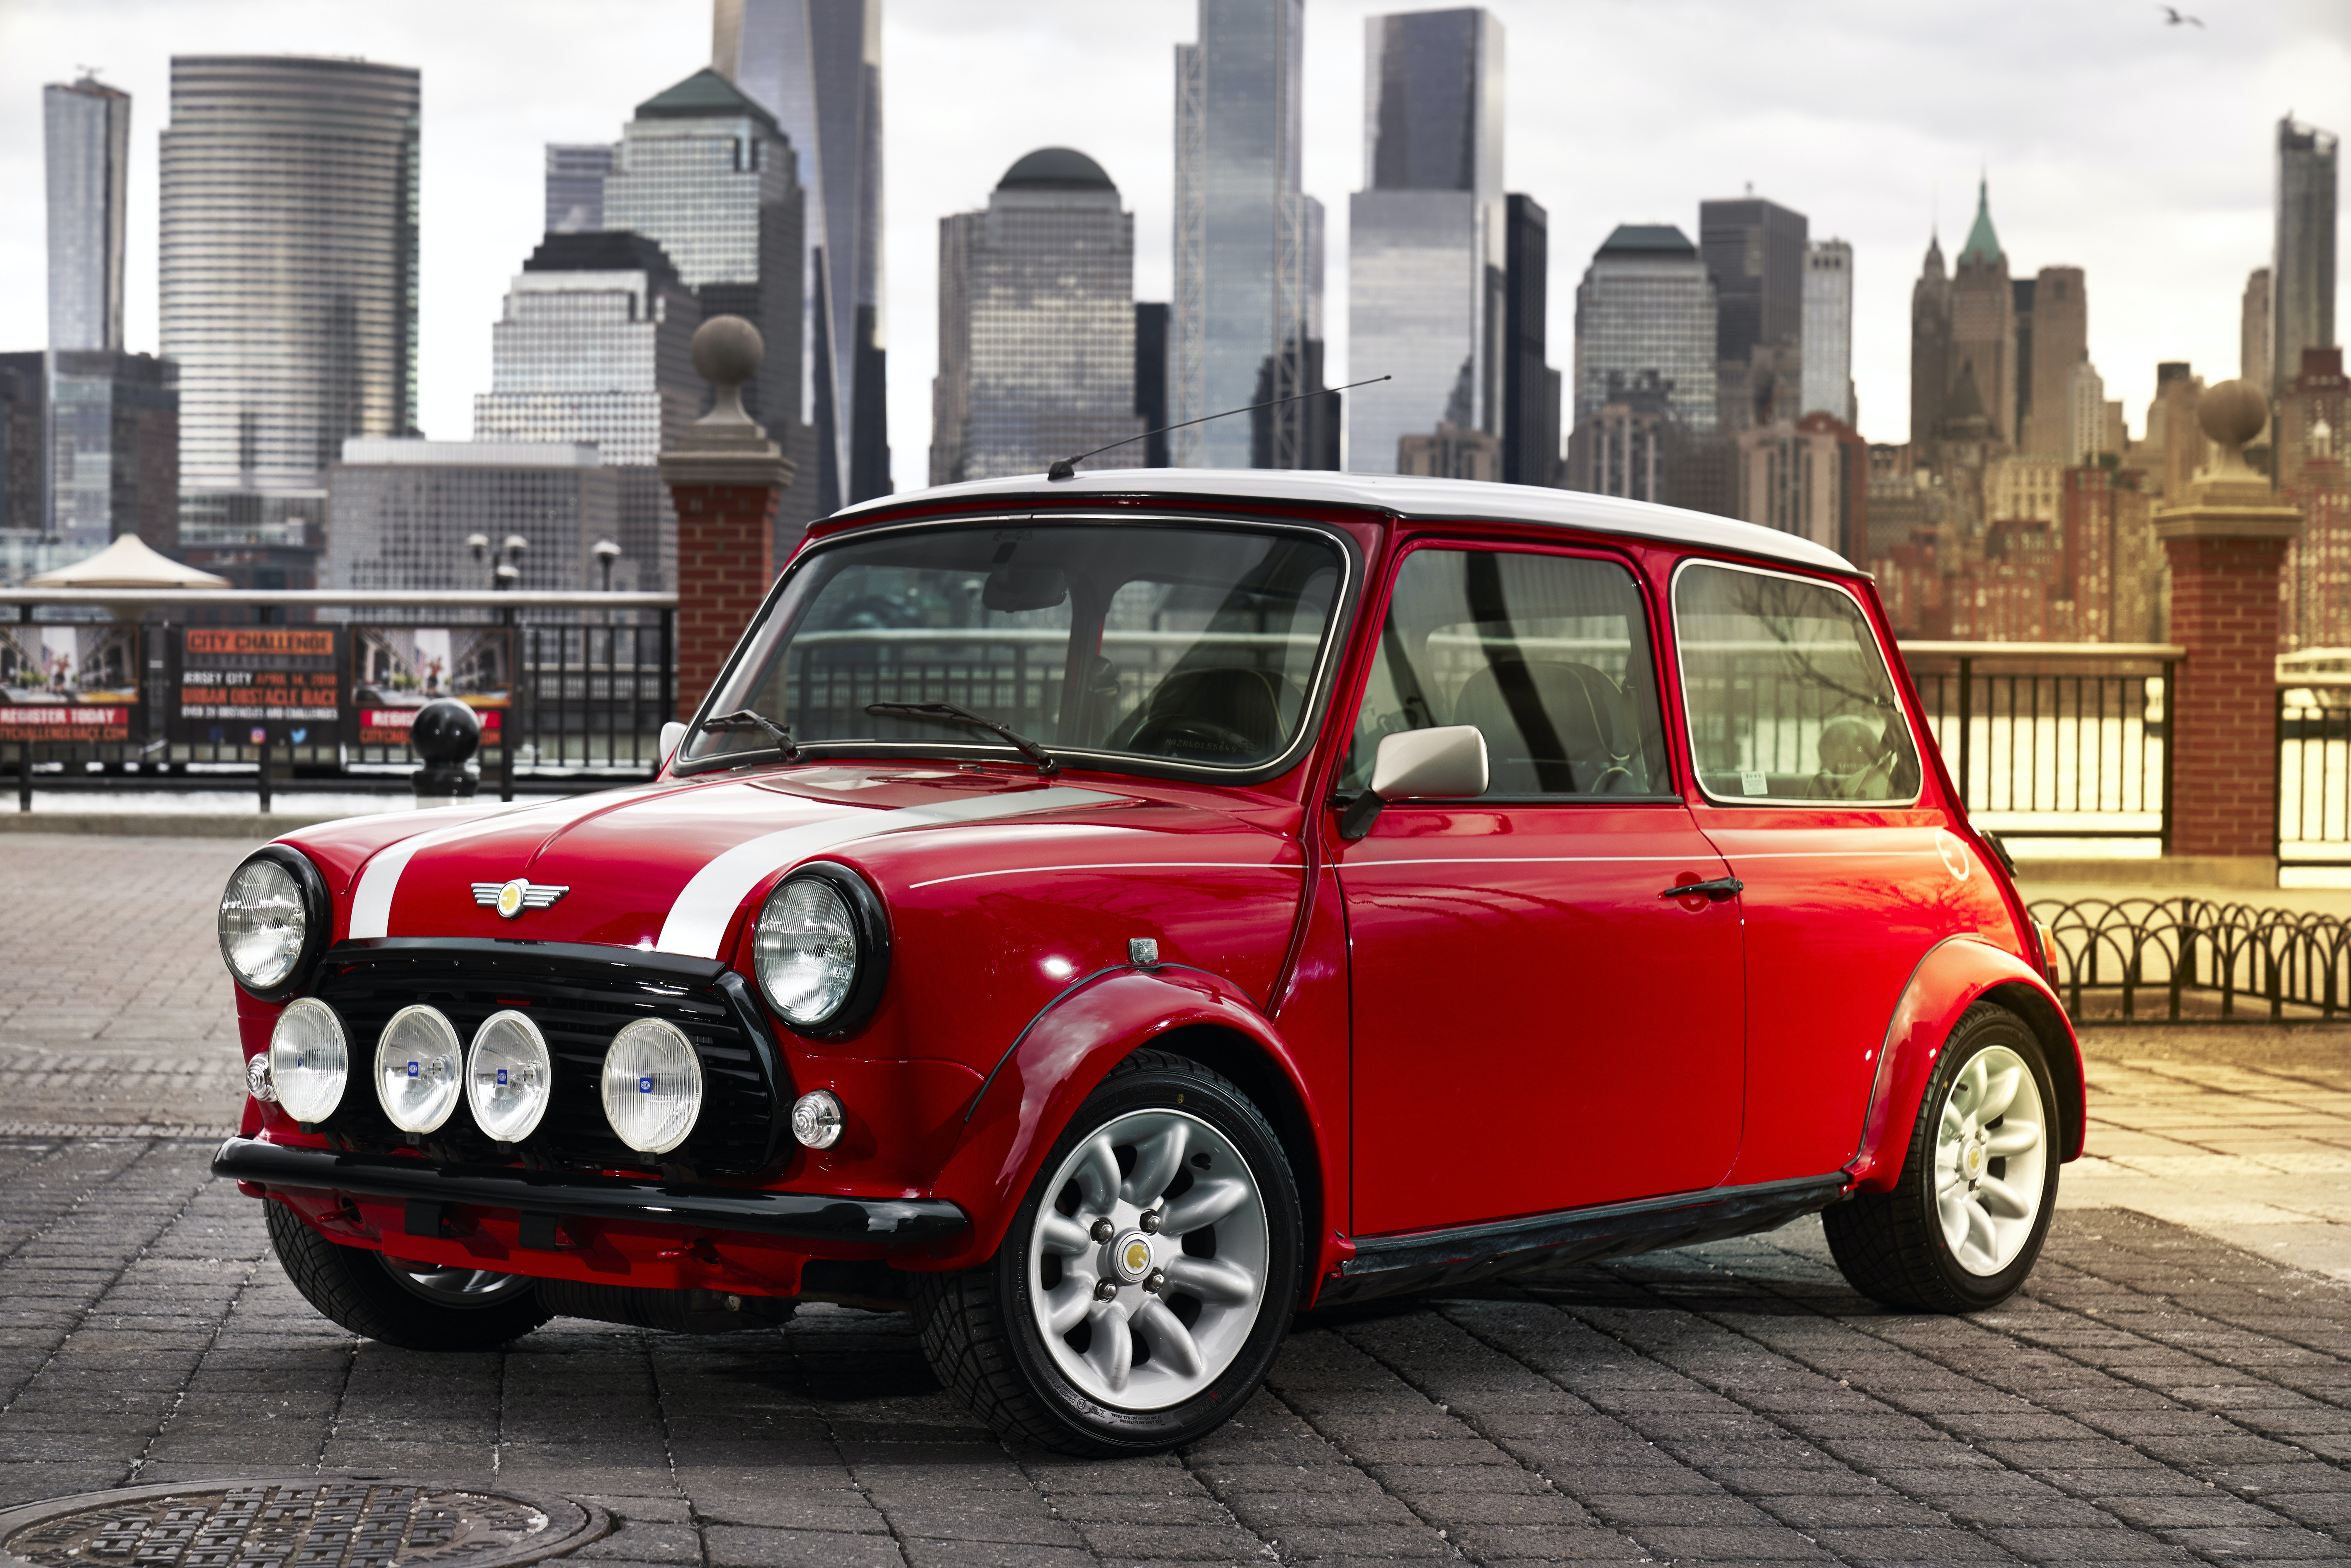 bmw mini cooper latest classic car to get electric makeover inverse Mini Supercharger BMW bmw\u0027s mini cooper is the latest classic car to get electric makeover